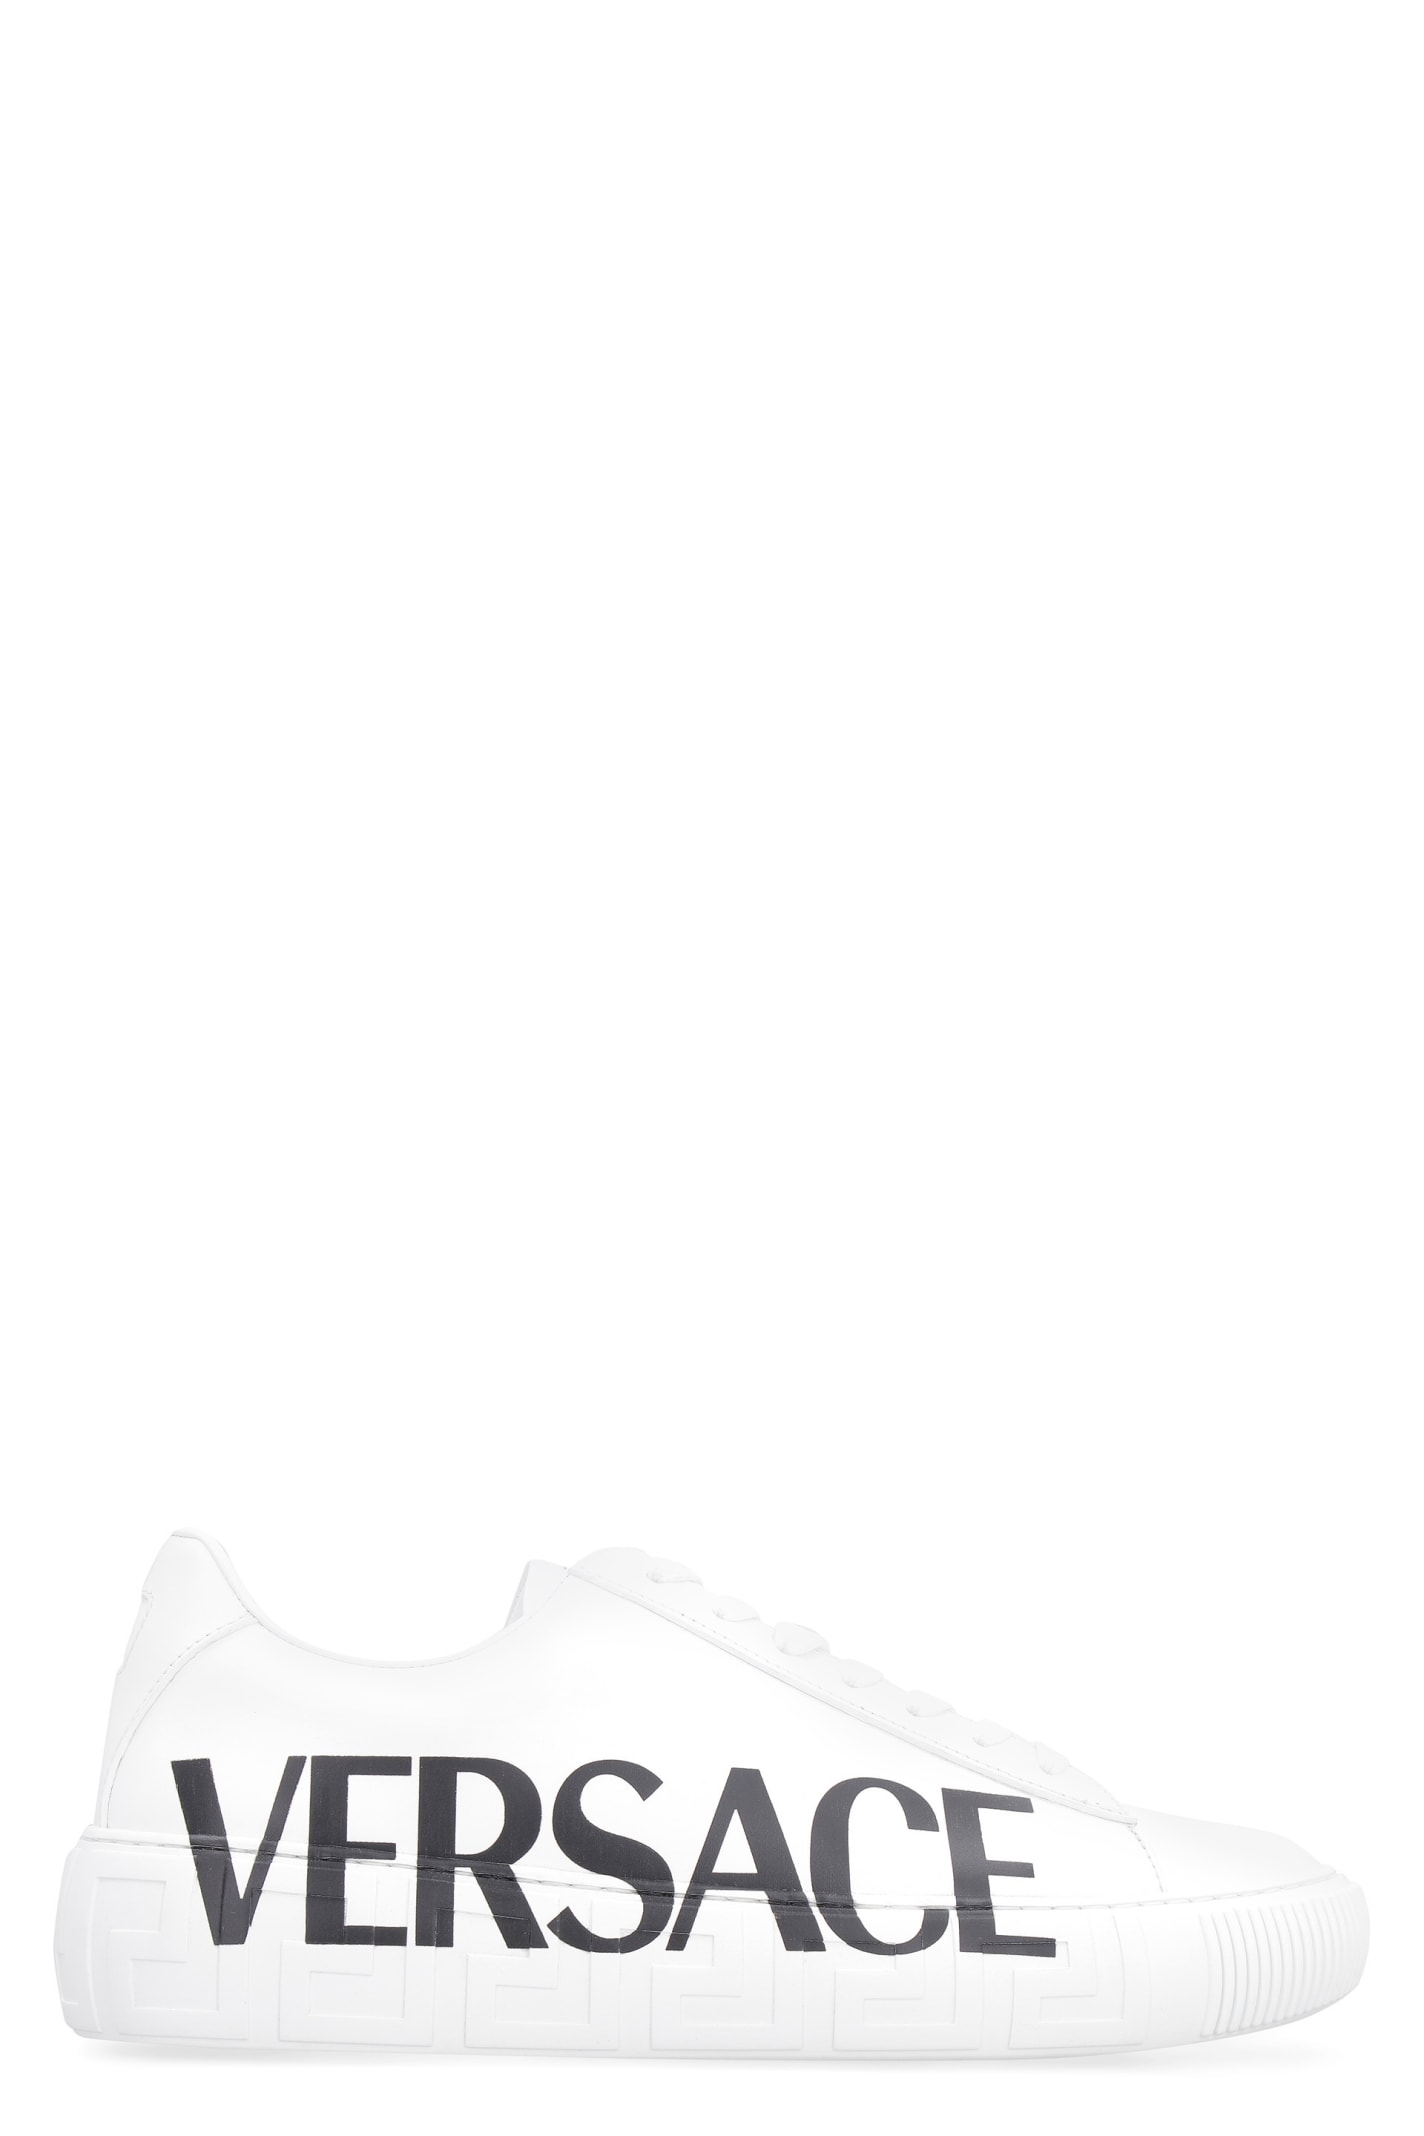 Buy Versace Leather Low-top Sneakers online, shop Versace shoes with free shipping